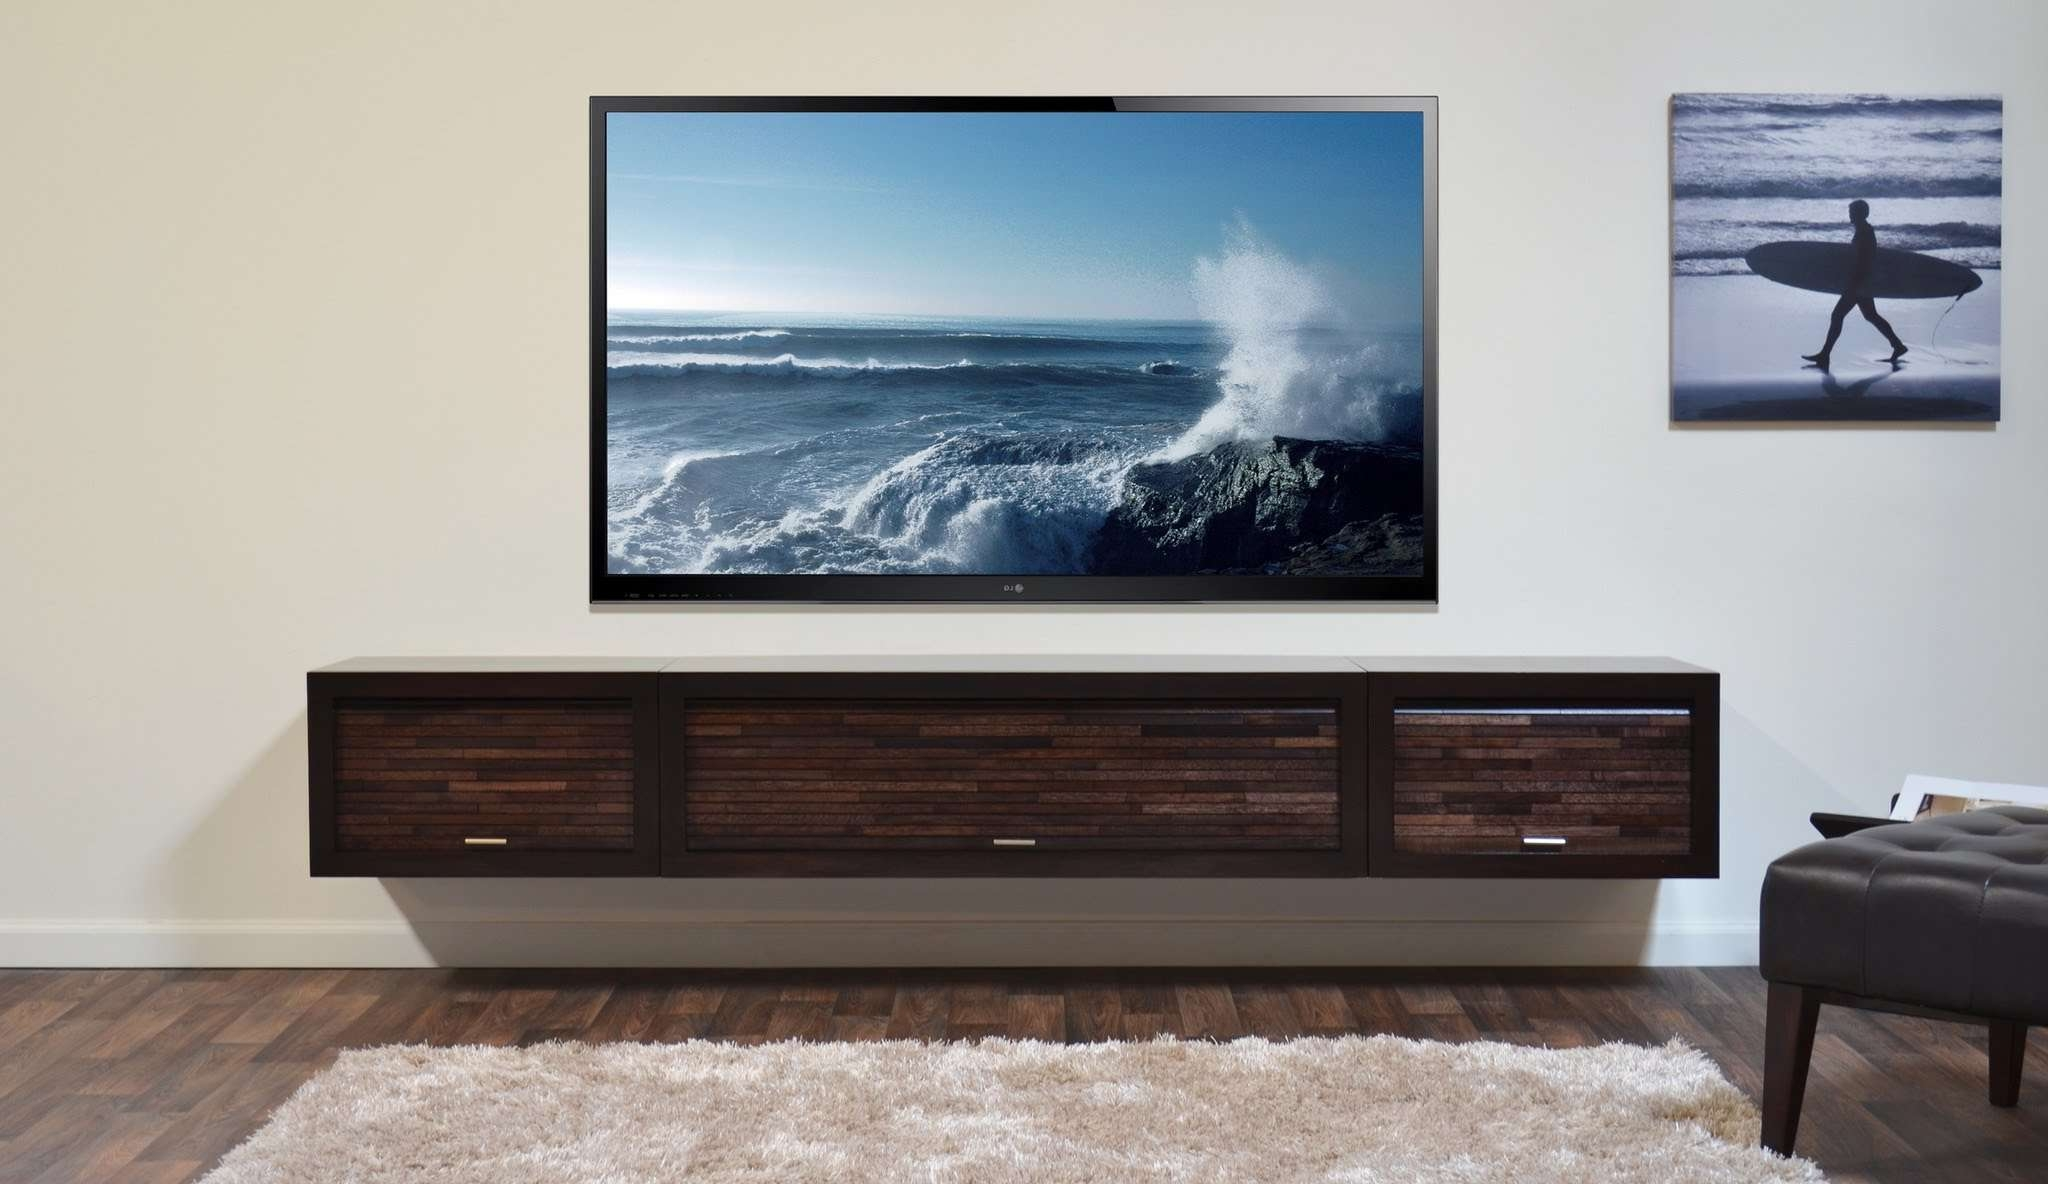 Diy Modern Tv Stand, Tv Stand Project On Pinterest – Youtube Regarding Modern Tv Cabinets (View 18 of 20)